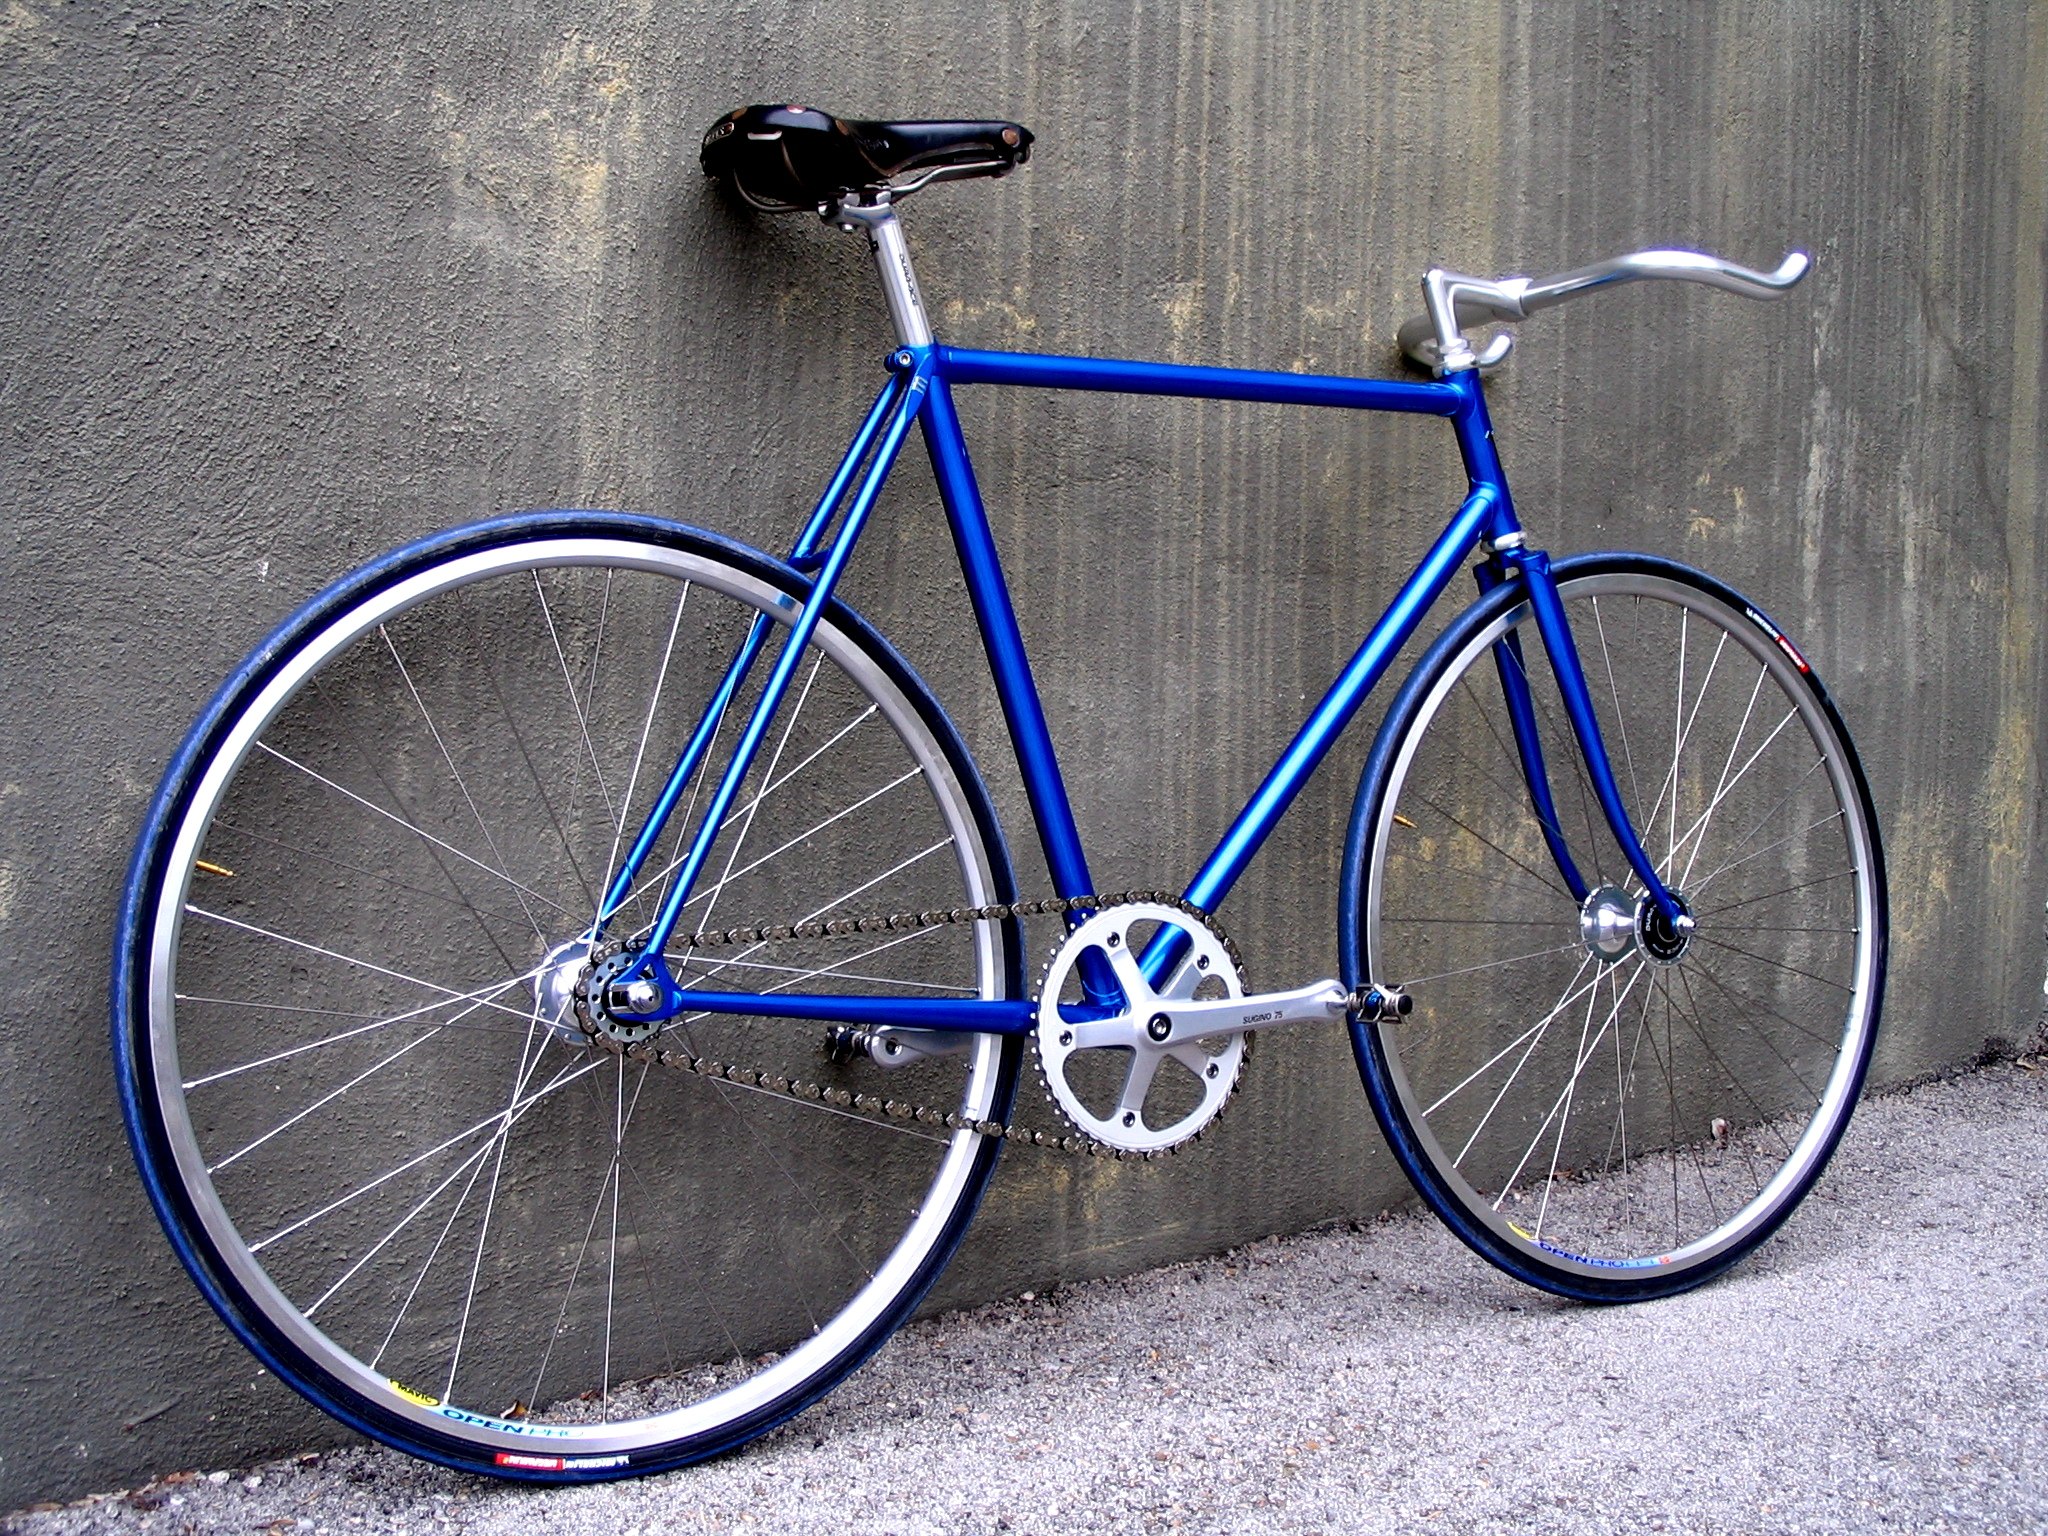 b03ea7942 Fixed-gear bicycle - Wikipedia